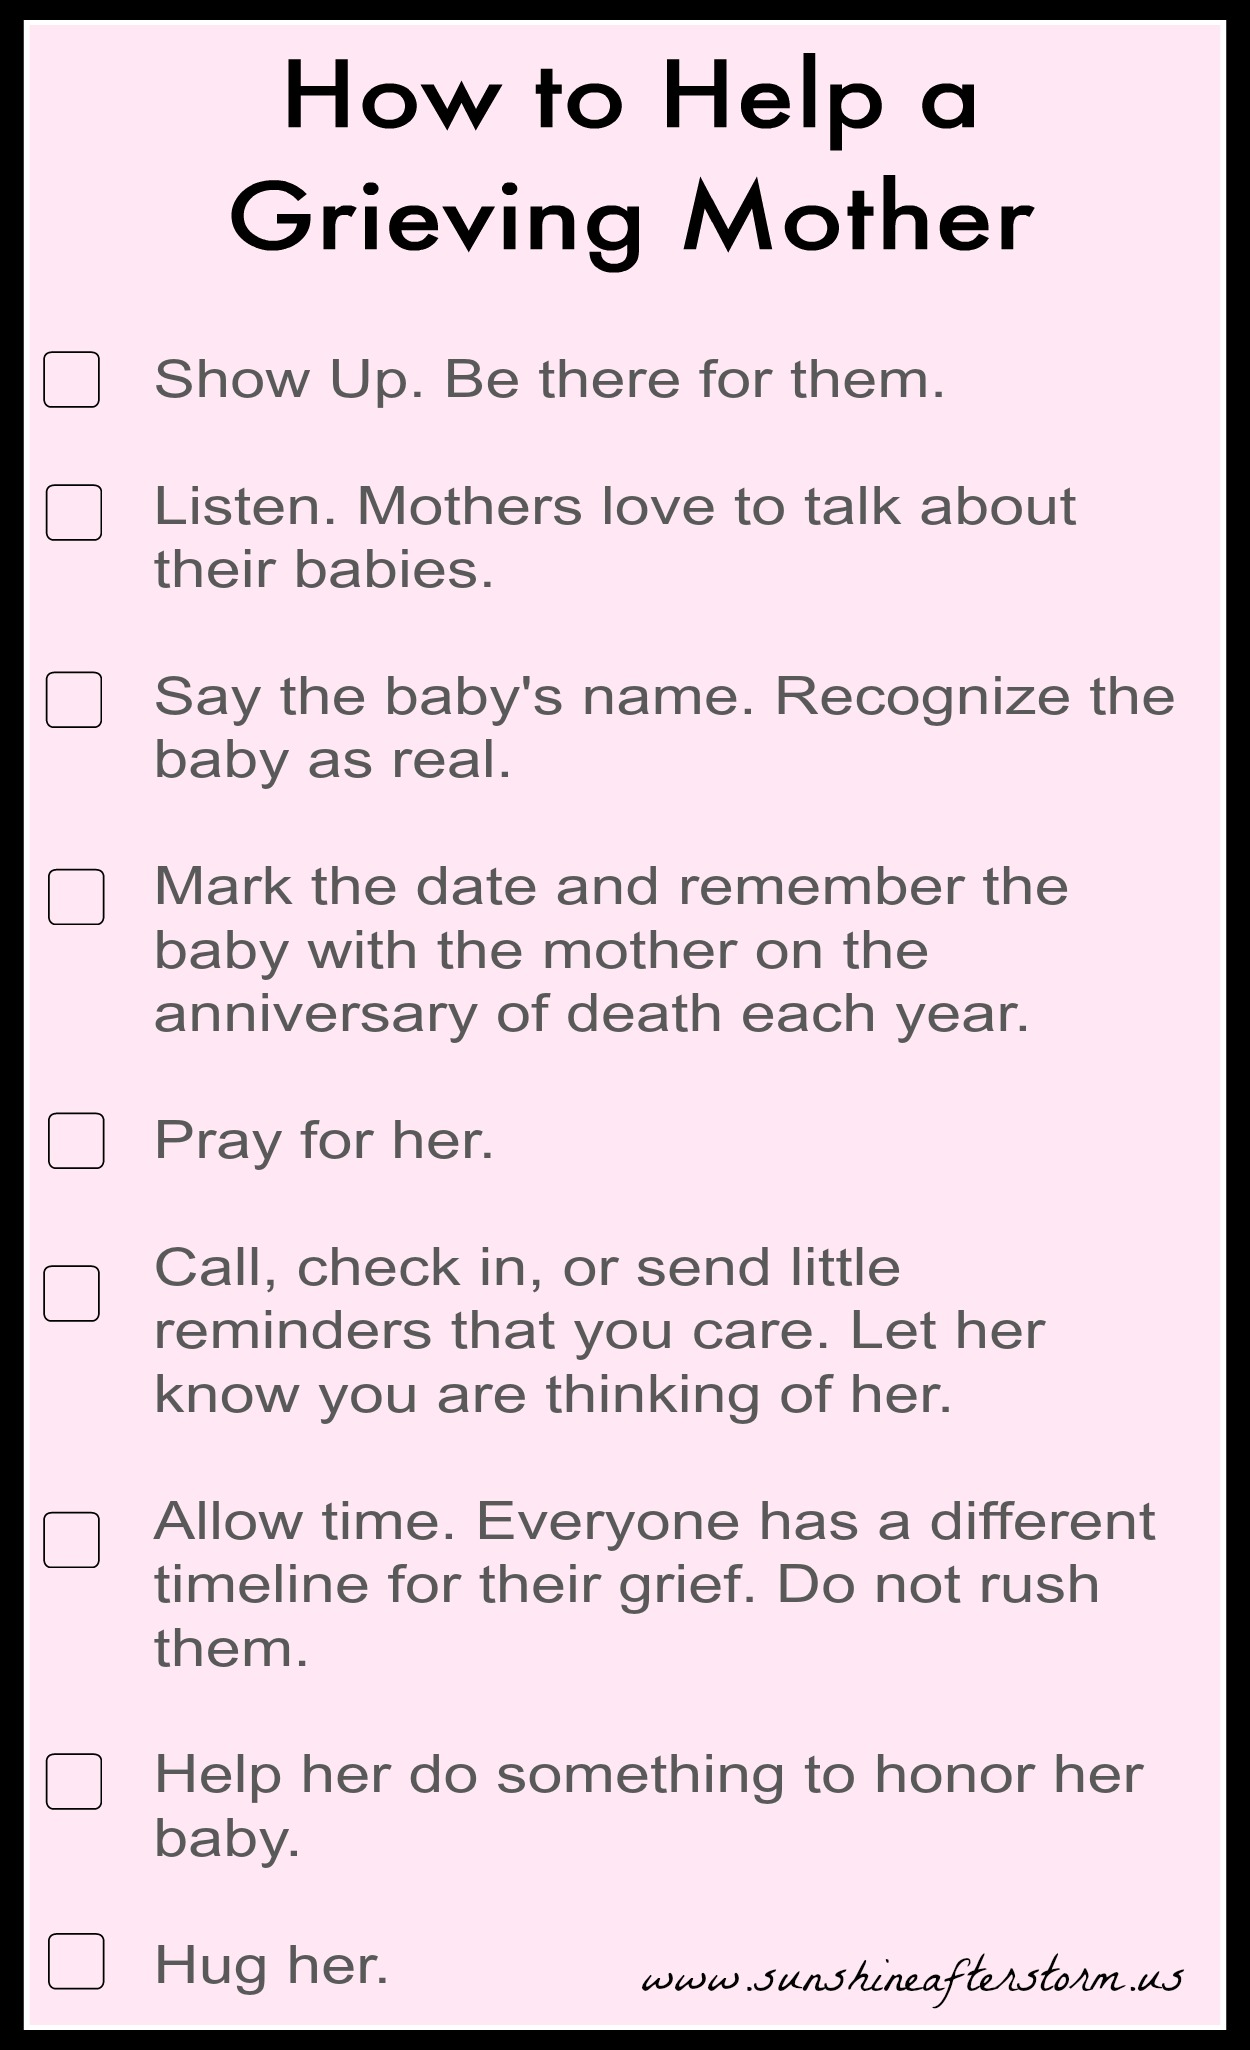 Tips for helping a grieving mother